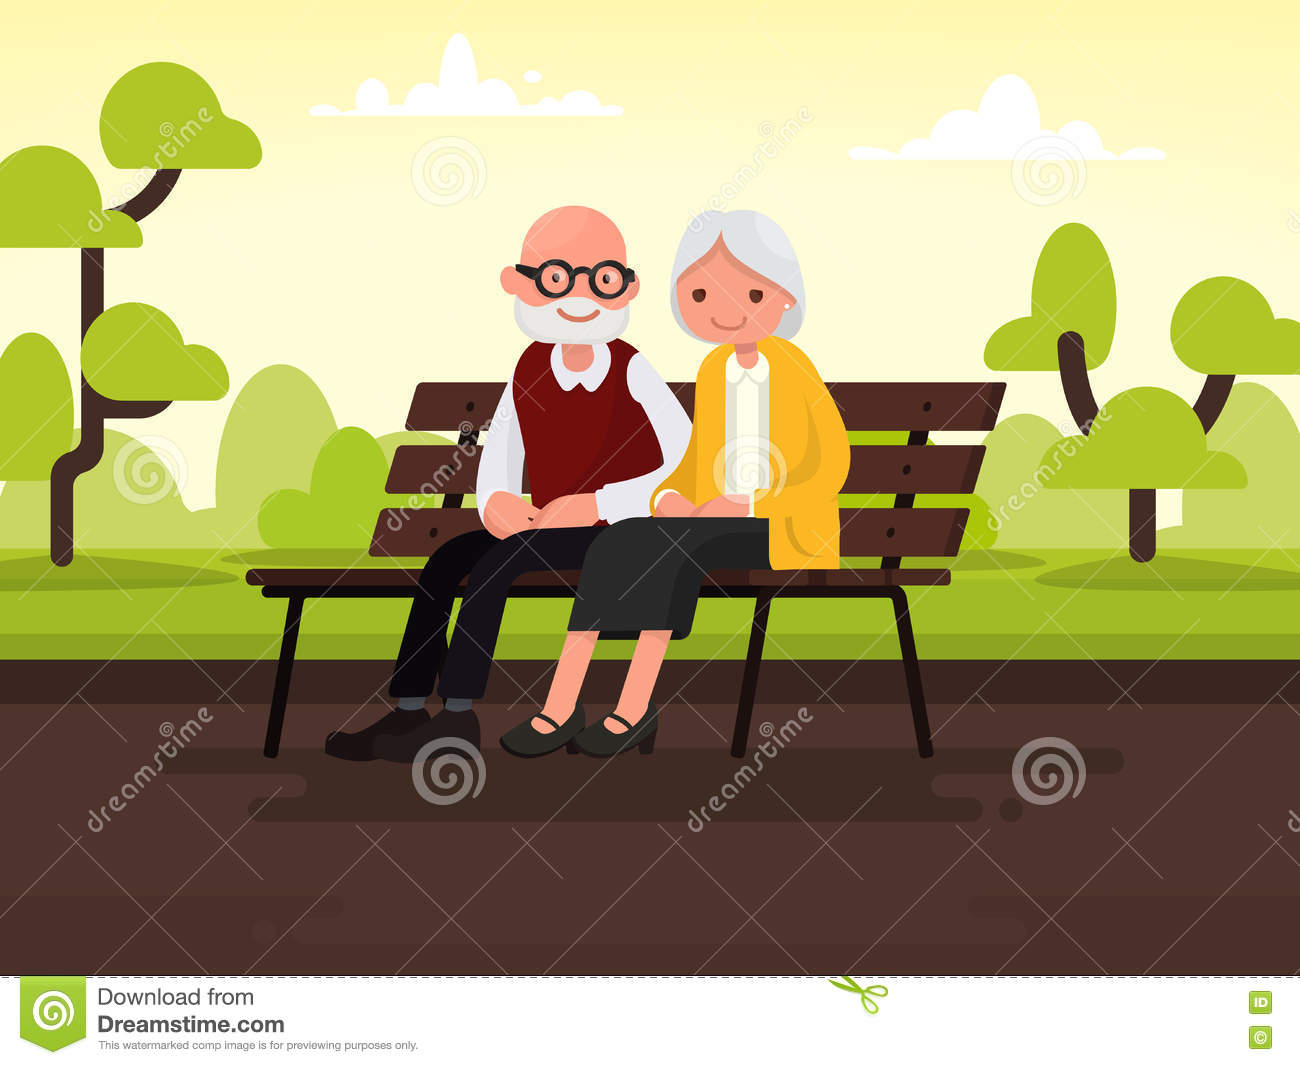 elderly cartoon couple on bench  royalty